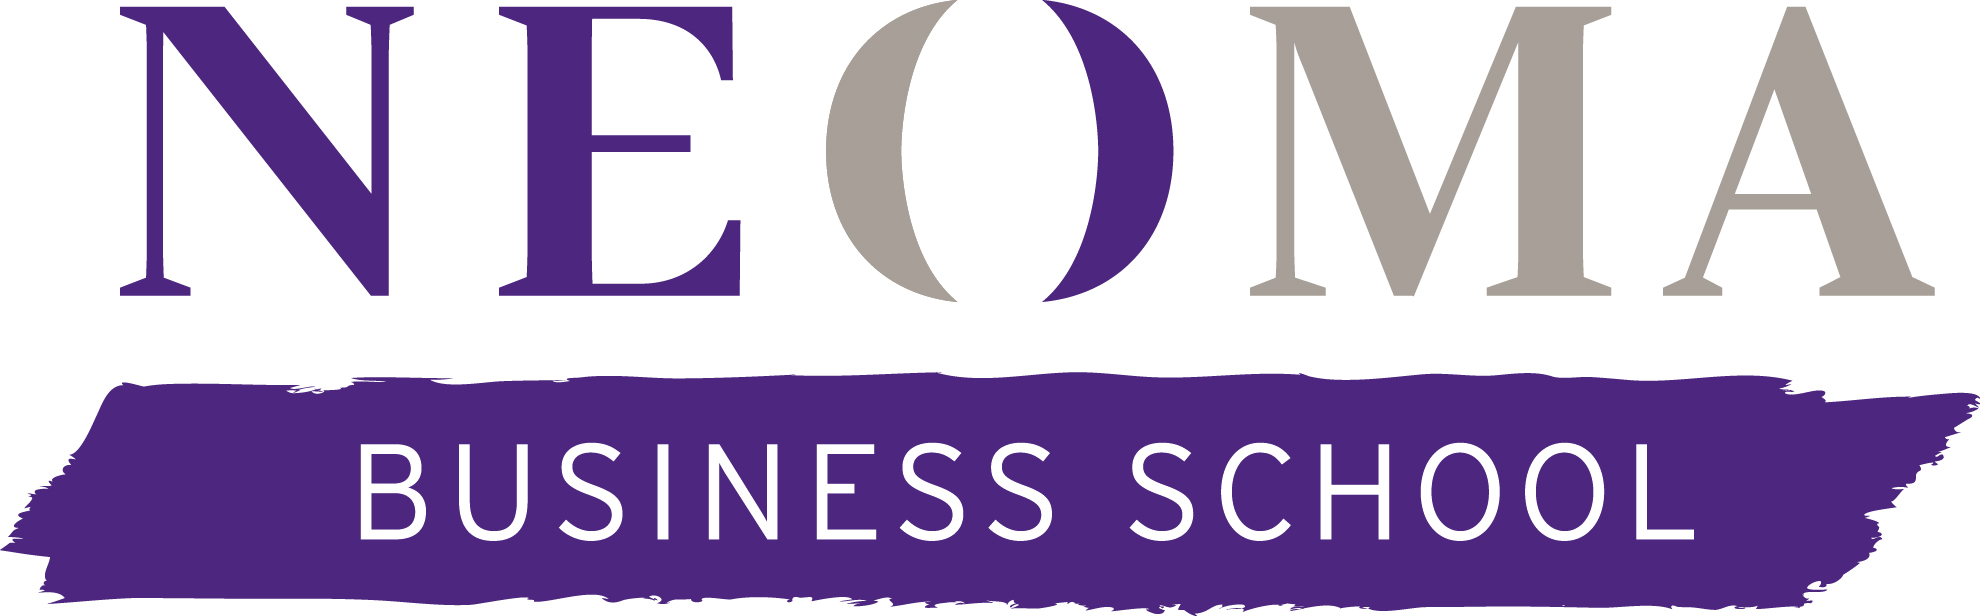 Neoma Business School accentue son expertise de la supply chain et vous ouvre ses portes